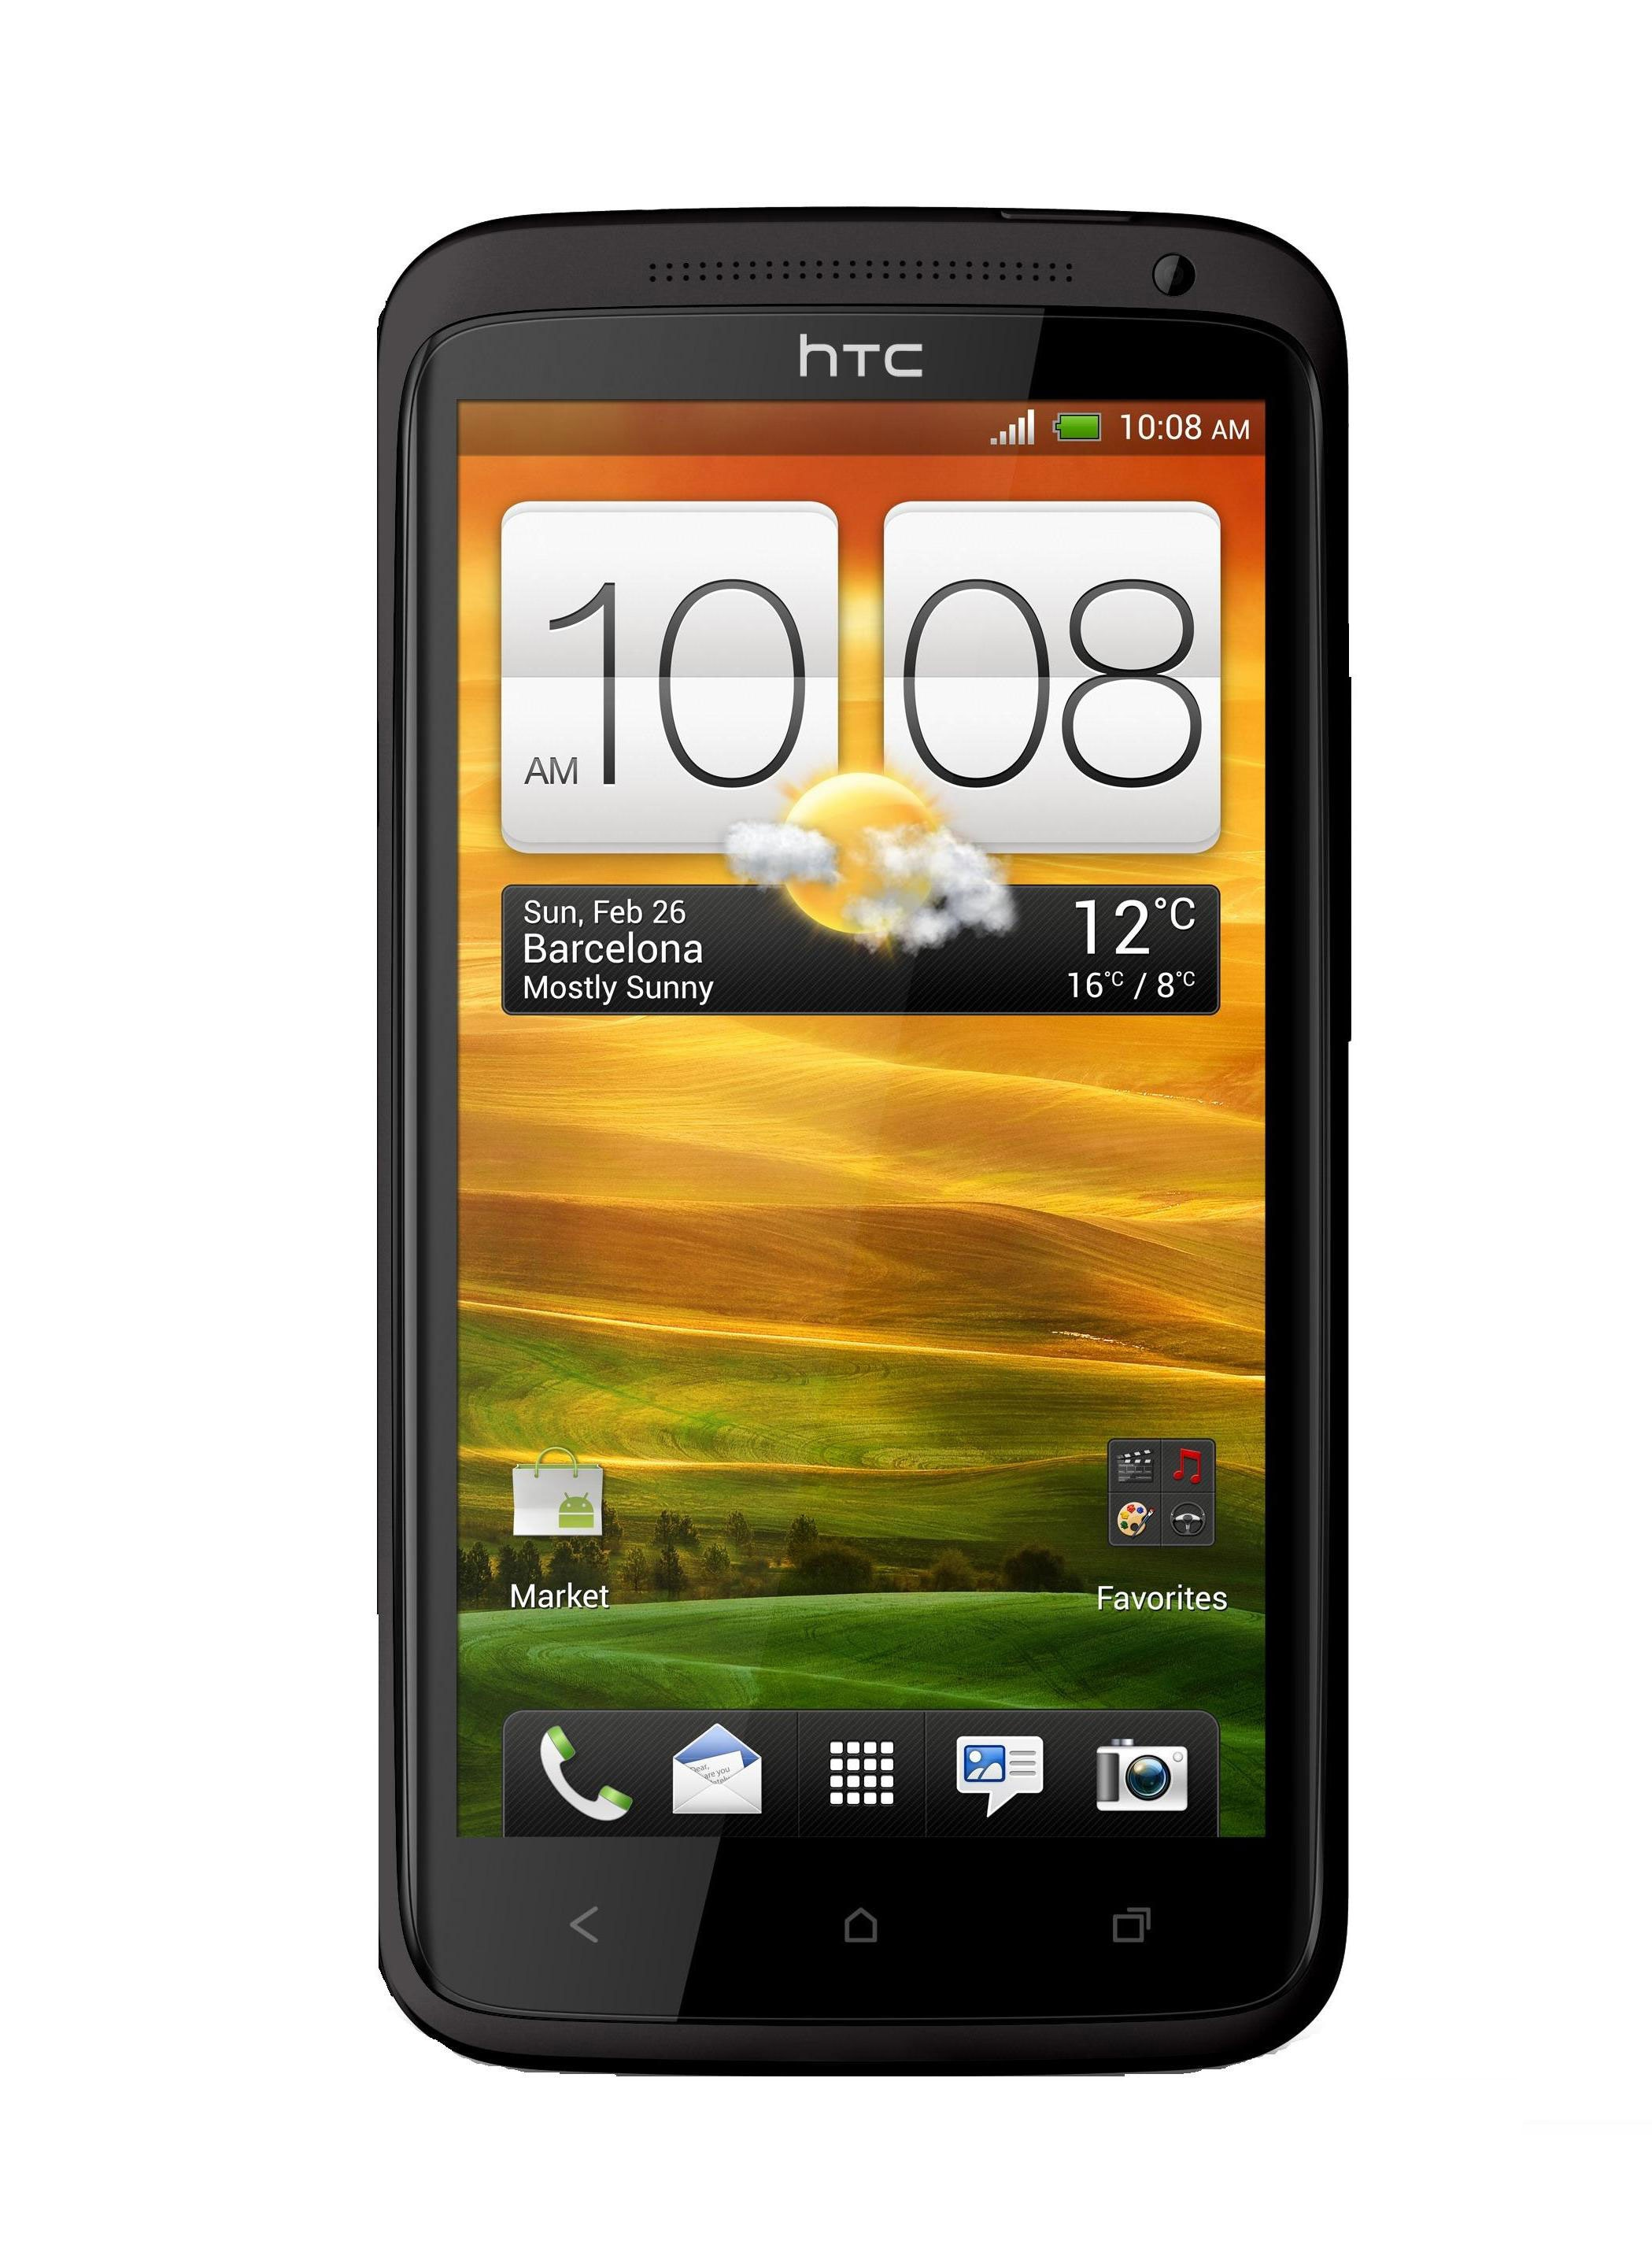 HTC One X S720e 16GB GSM Unlocked GSM Android Phone